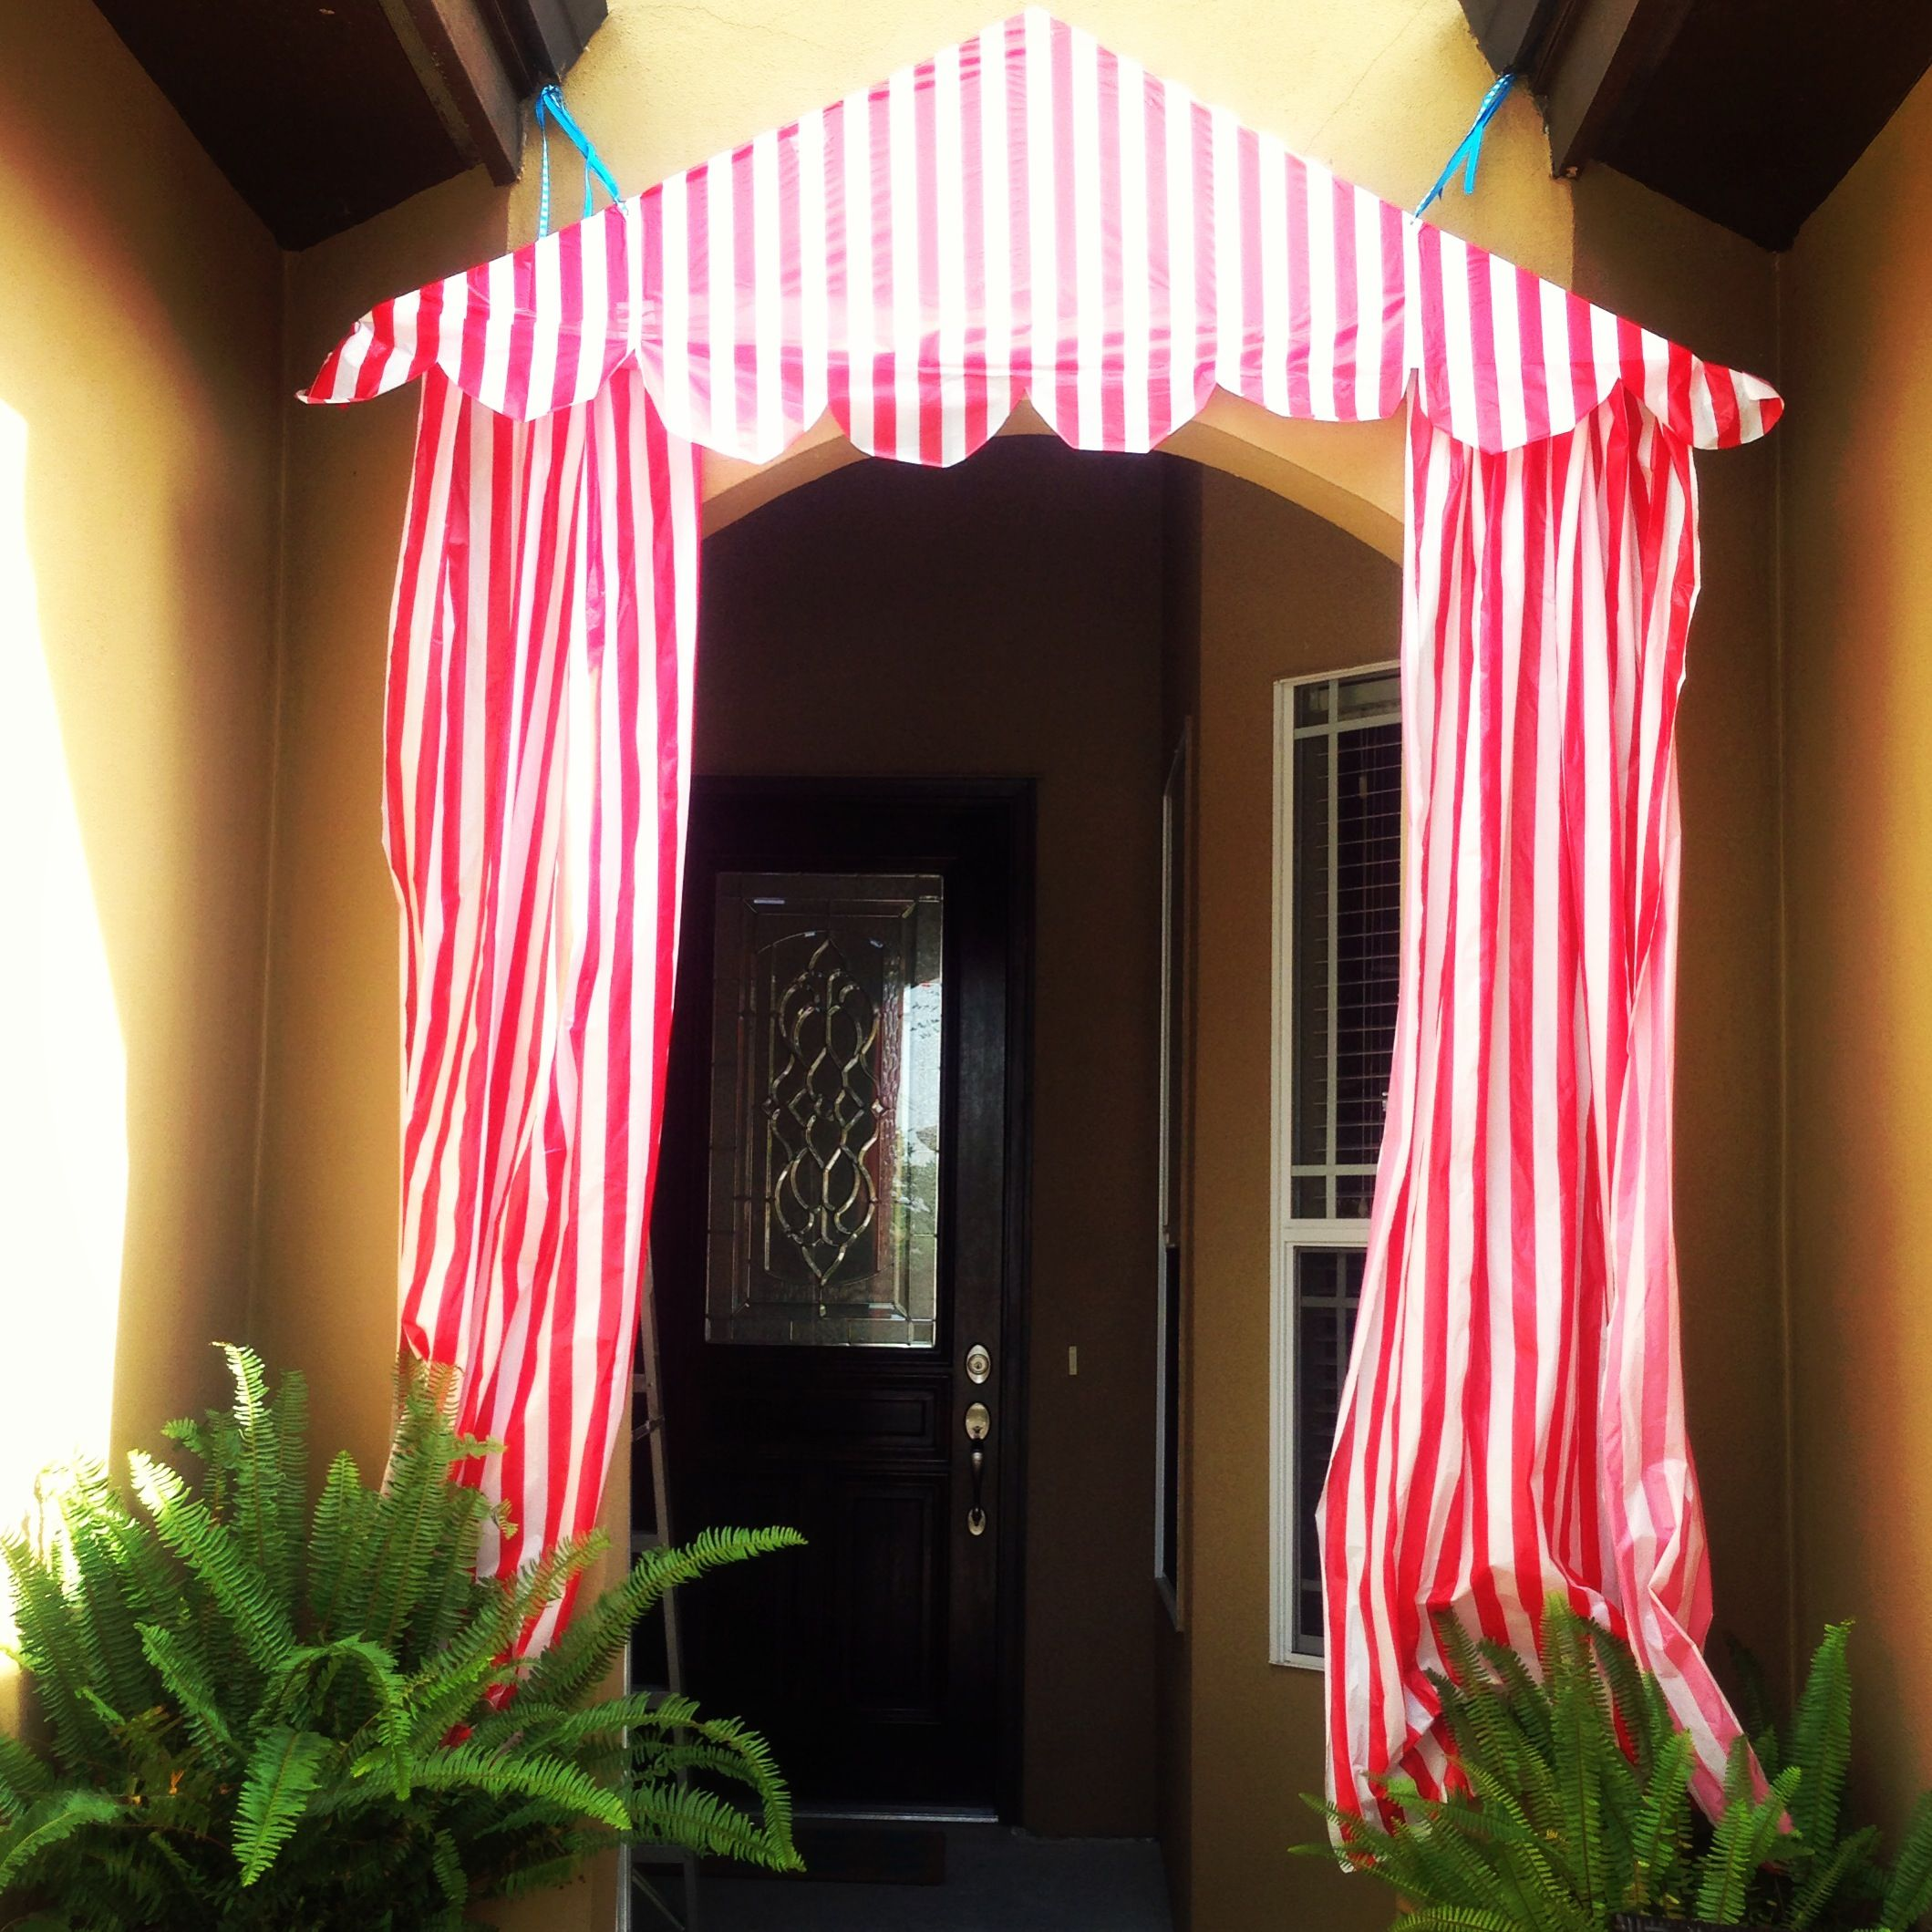 Circus birthday party main entrance, DIY tent. tablecloths from oriental trading over cardboard triangle